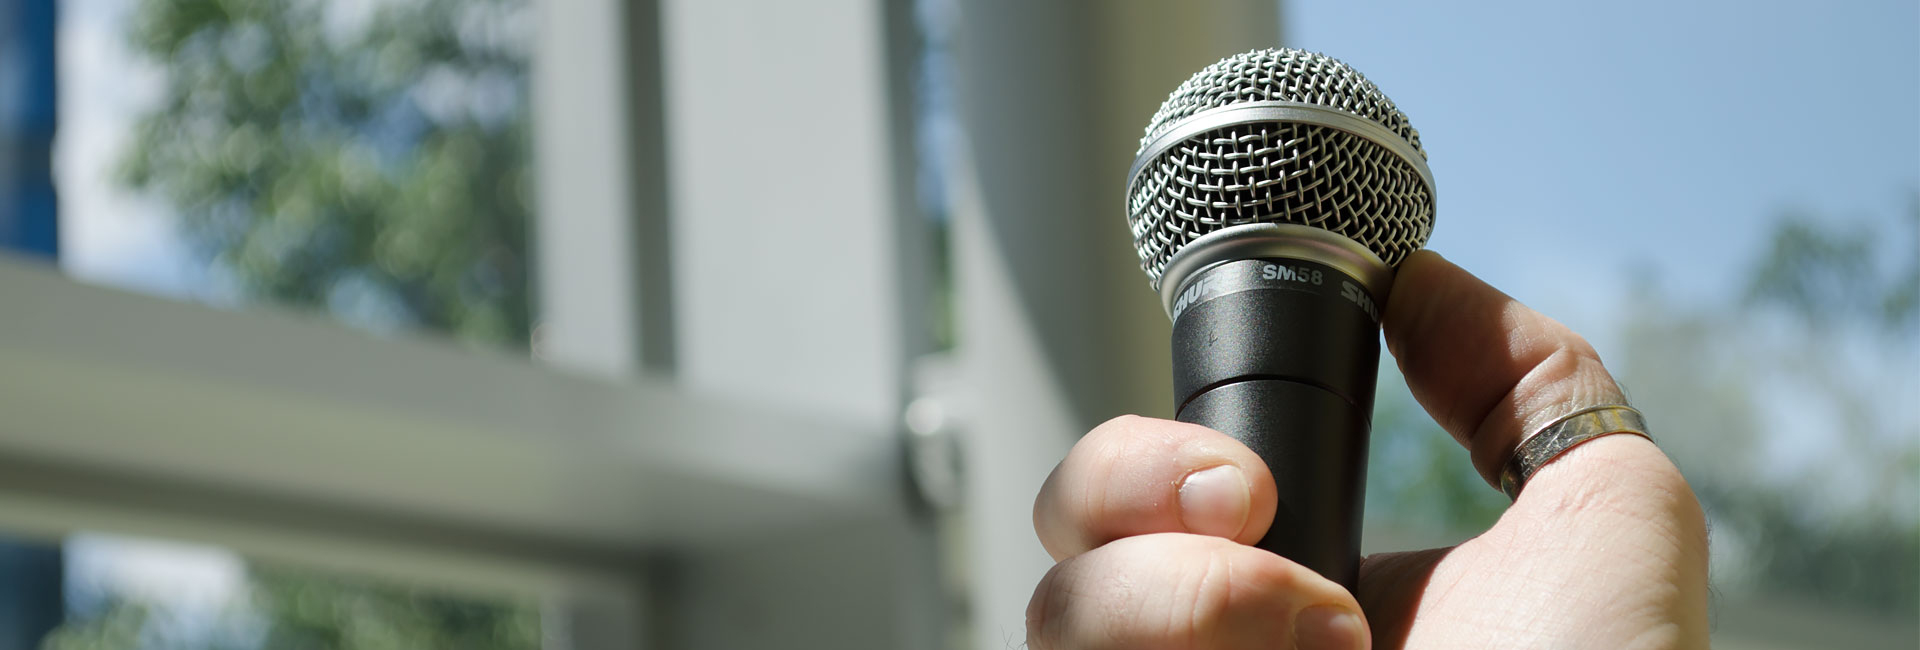 Top 8 Microphone Myths Exposed | Shure Blog - Wiring Diagram For Electric Microphone To Usb